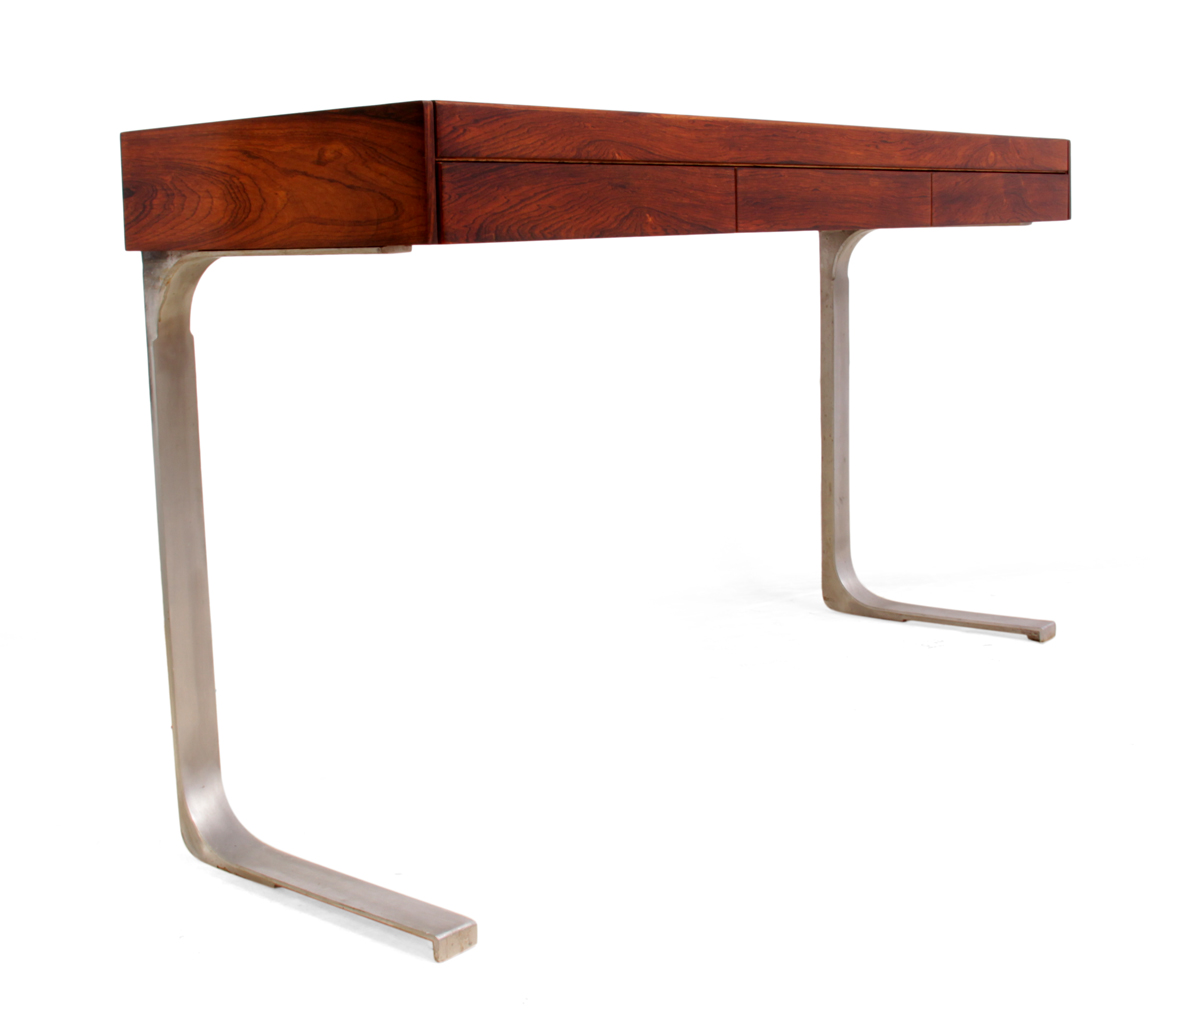 Planar console table